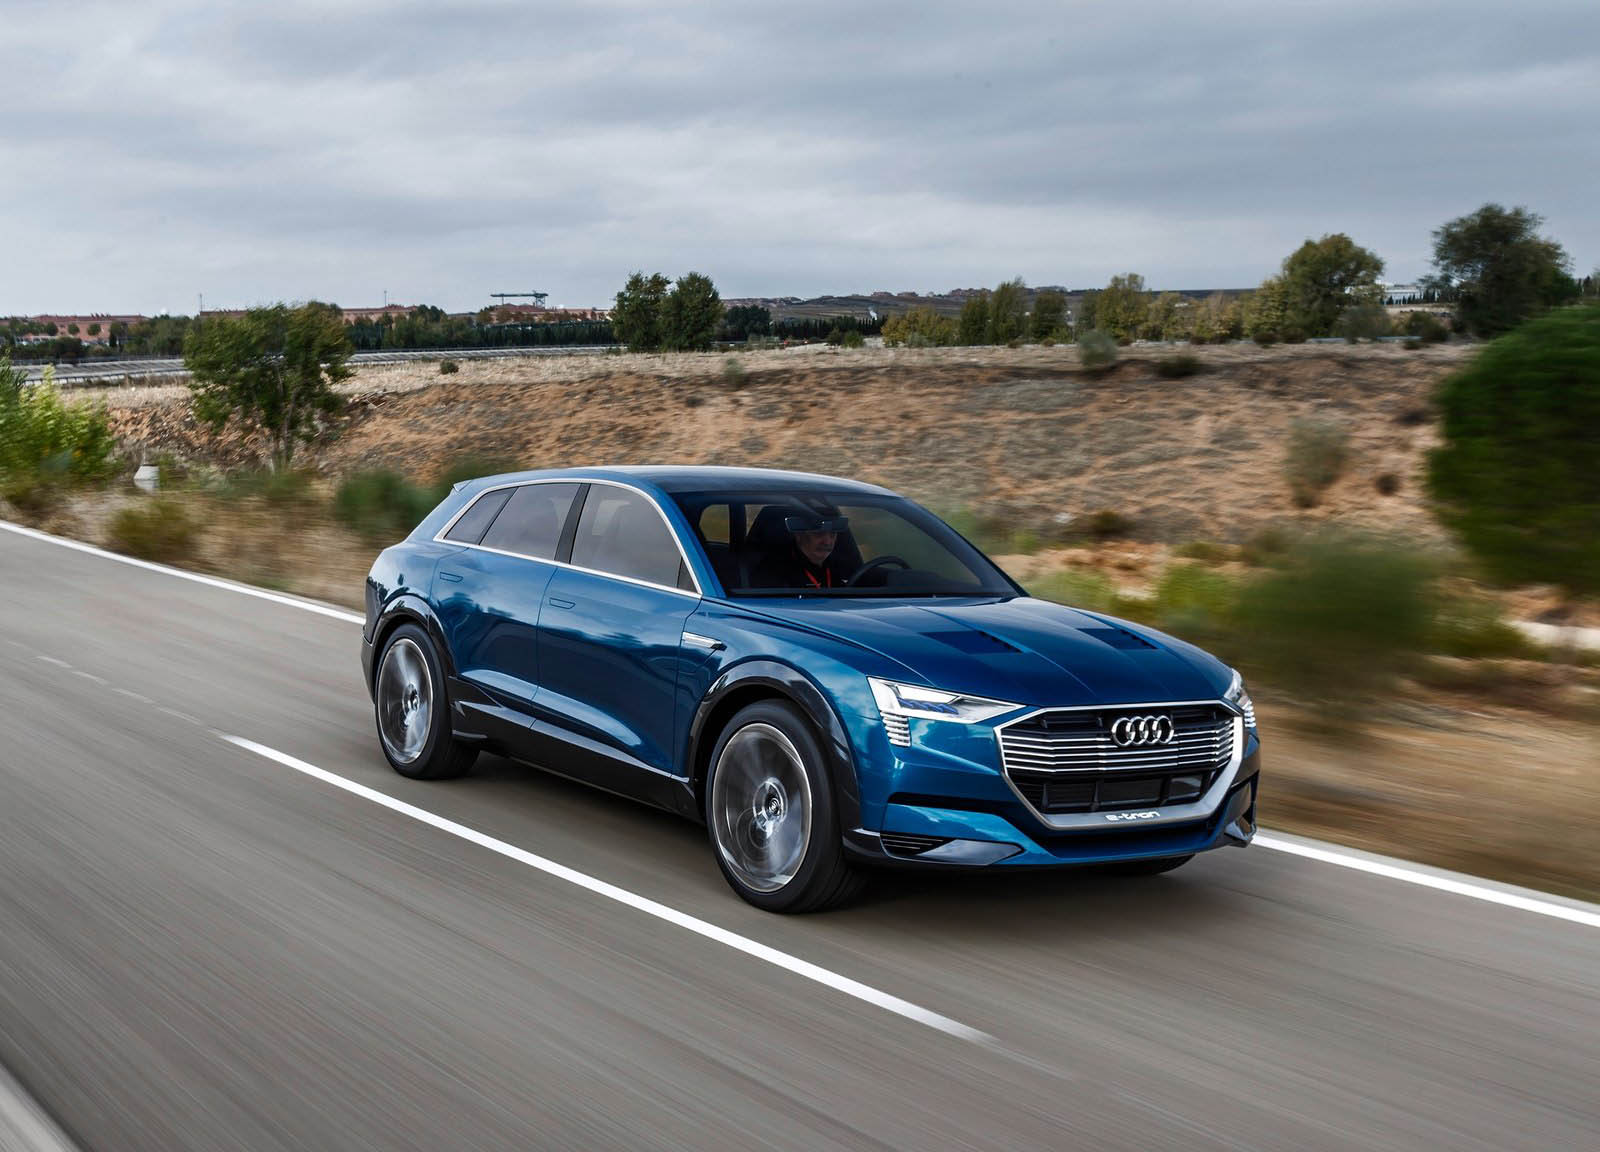 Build Audi Q5 >> Audi To Build Two New Electric SUVs In Germany From 2021 | Carscoops